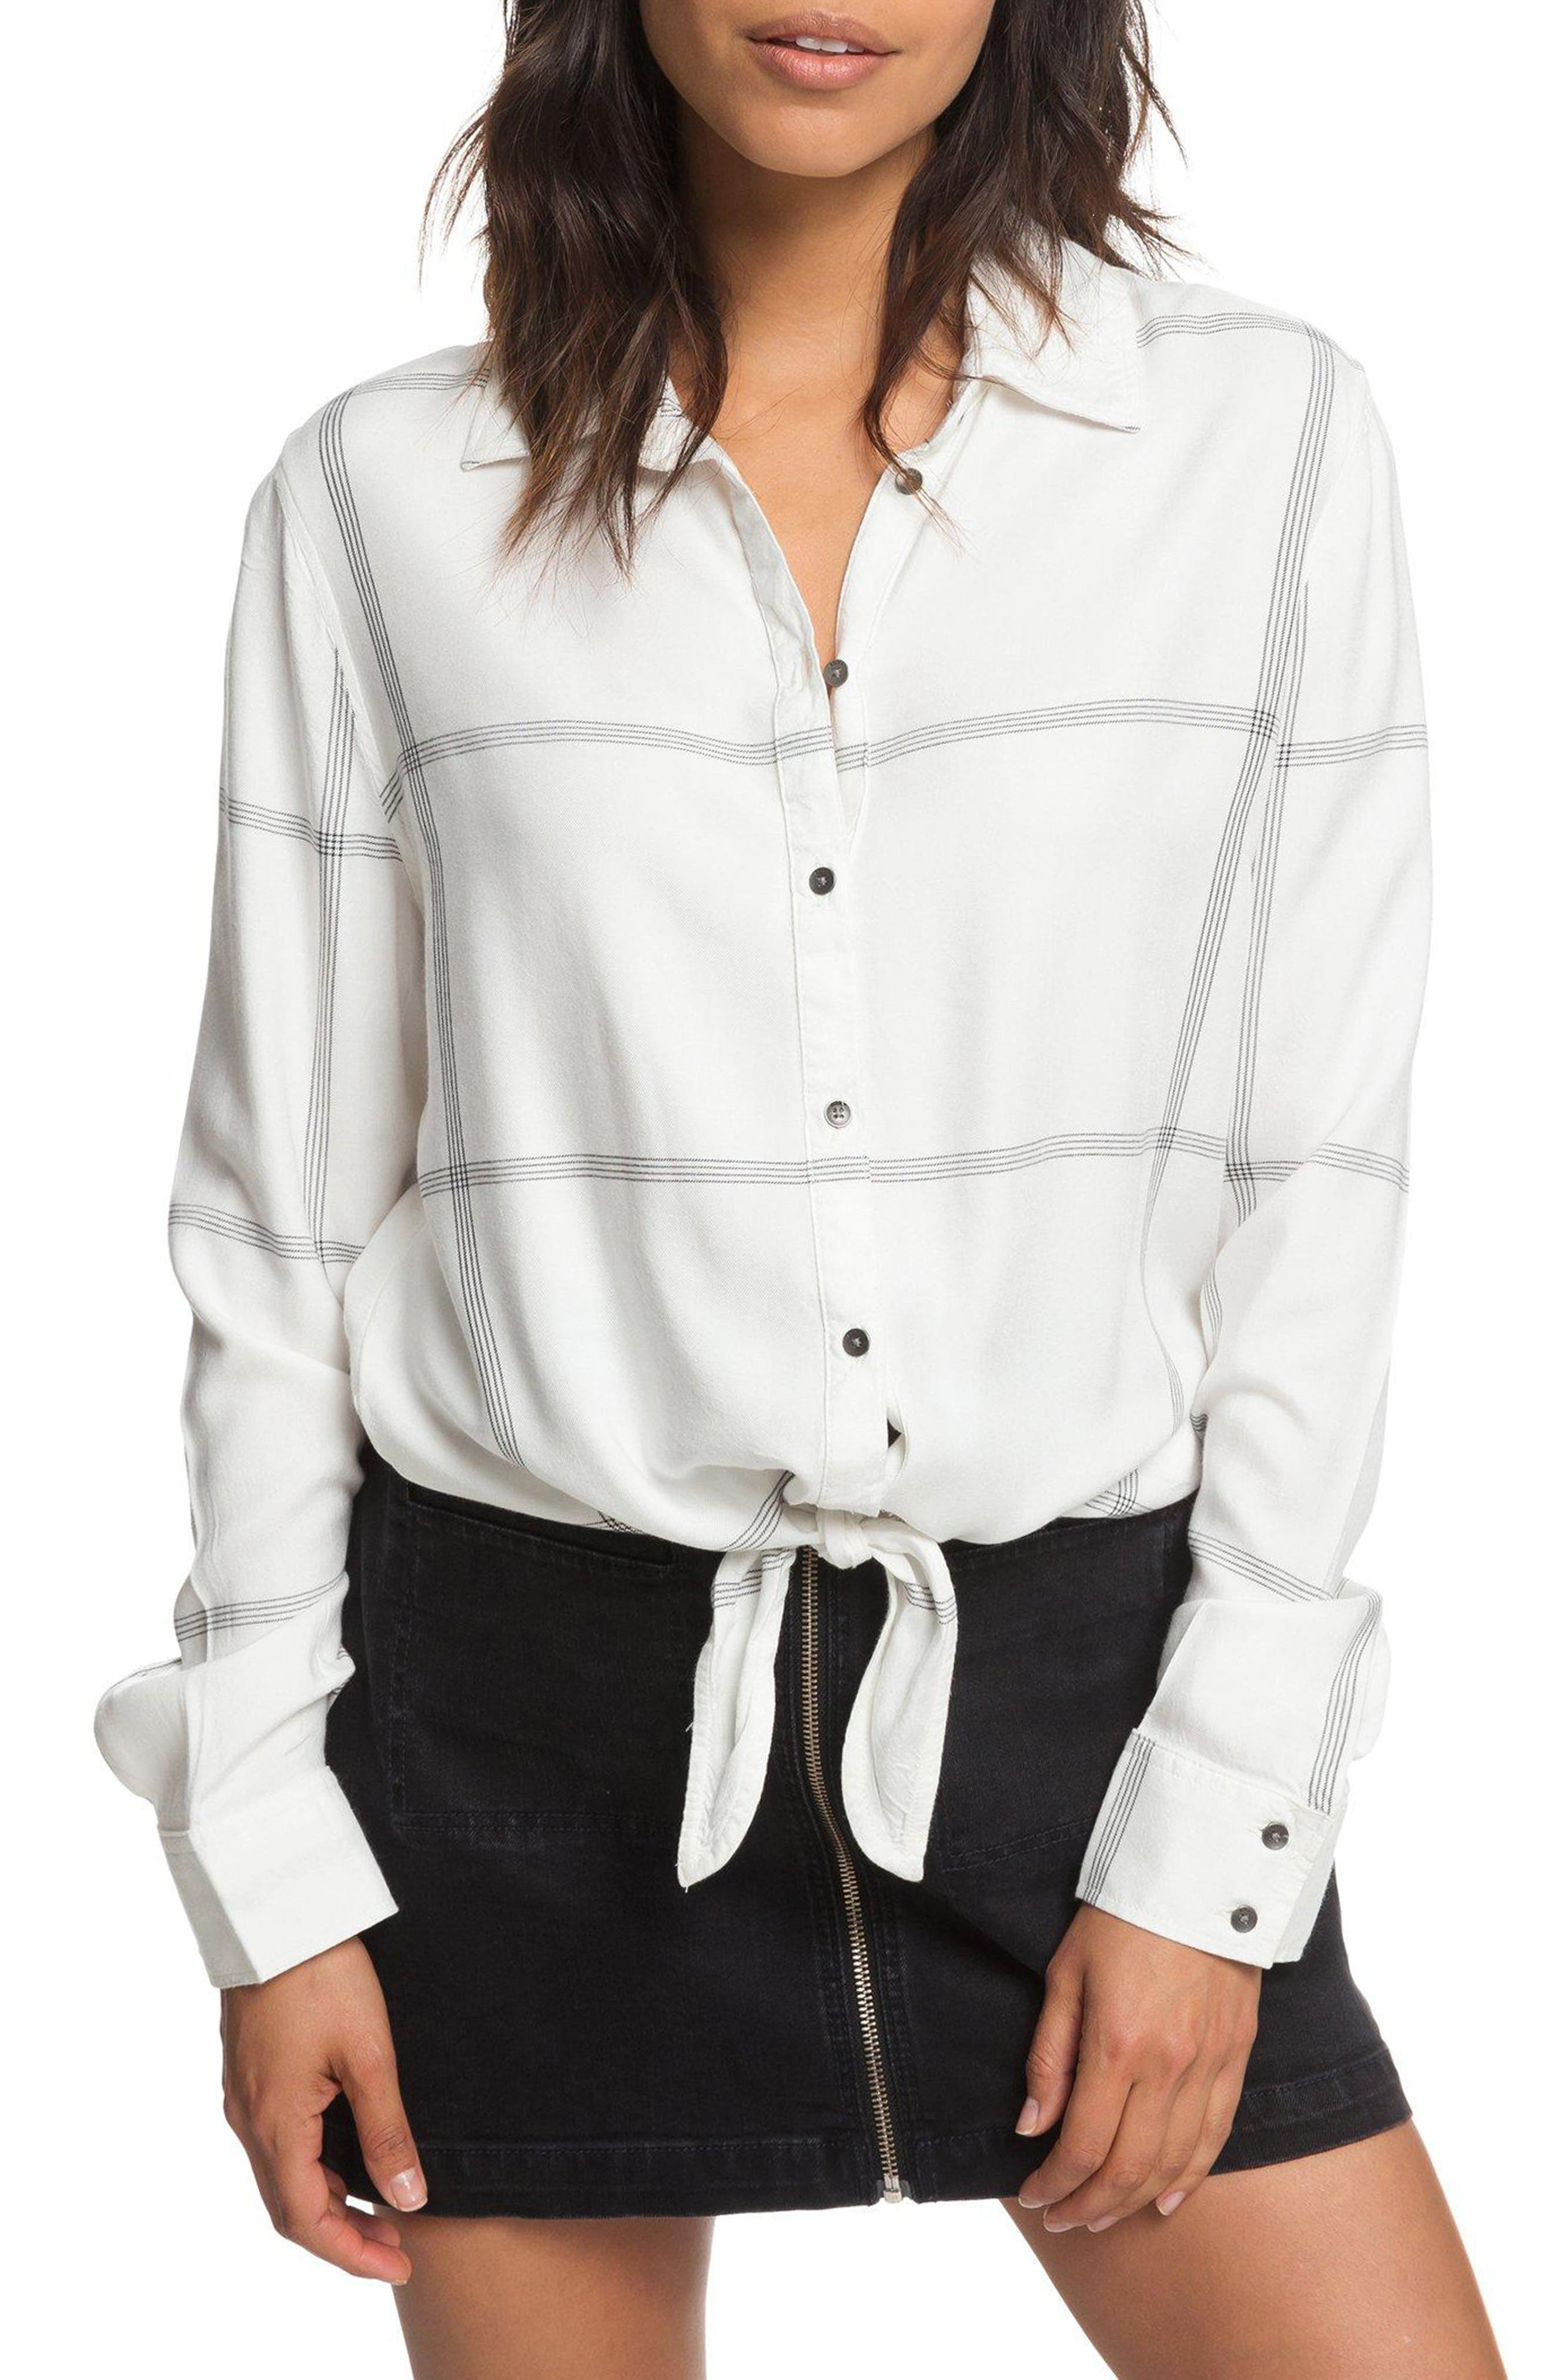 ROXY Suburb Vibes Tie Waist Top, Main, color, 100